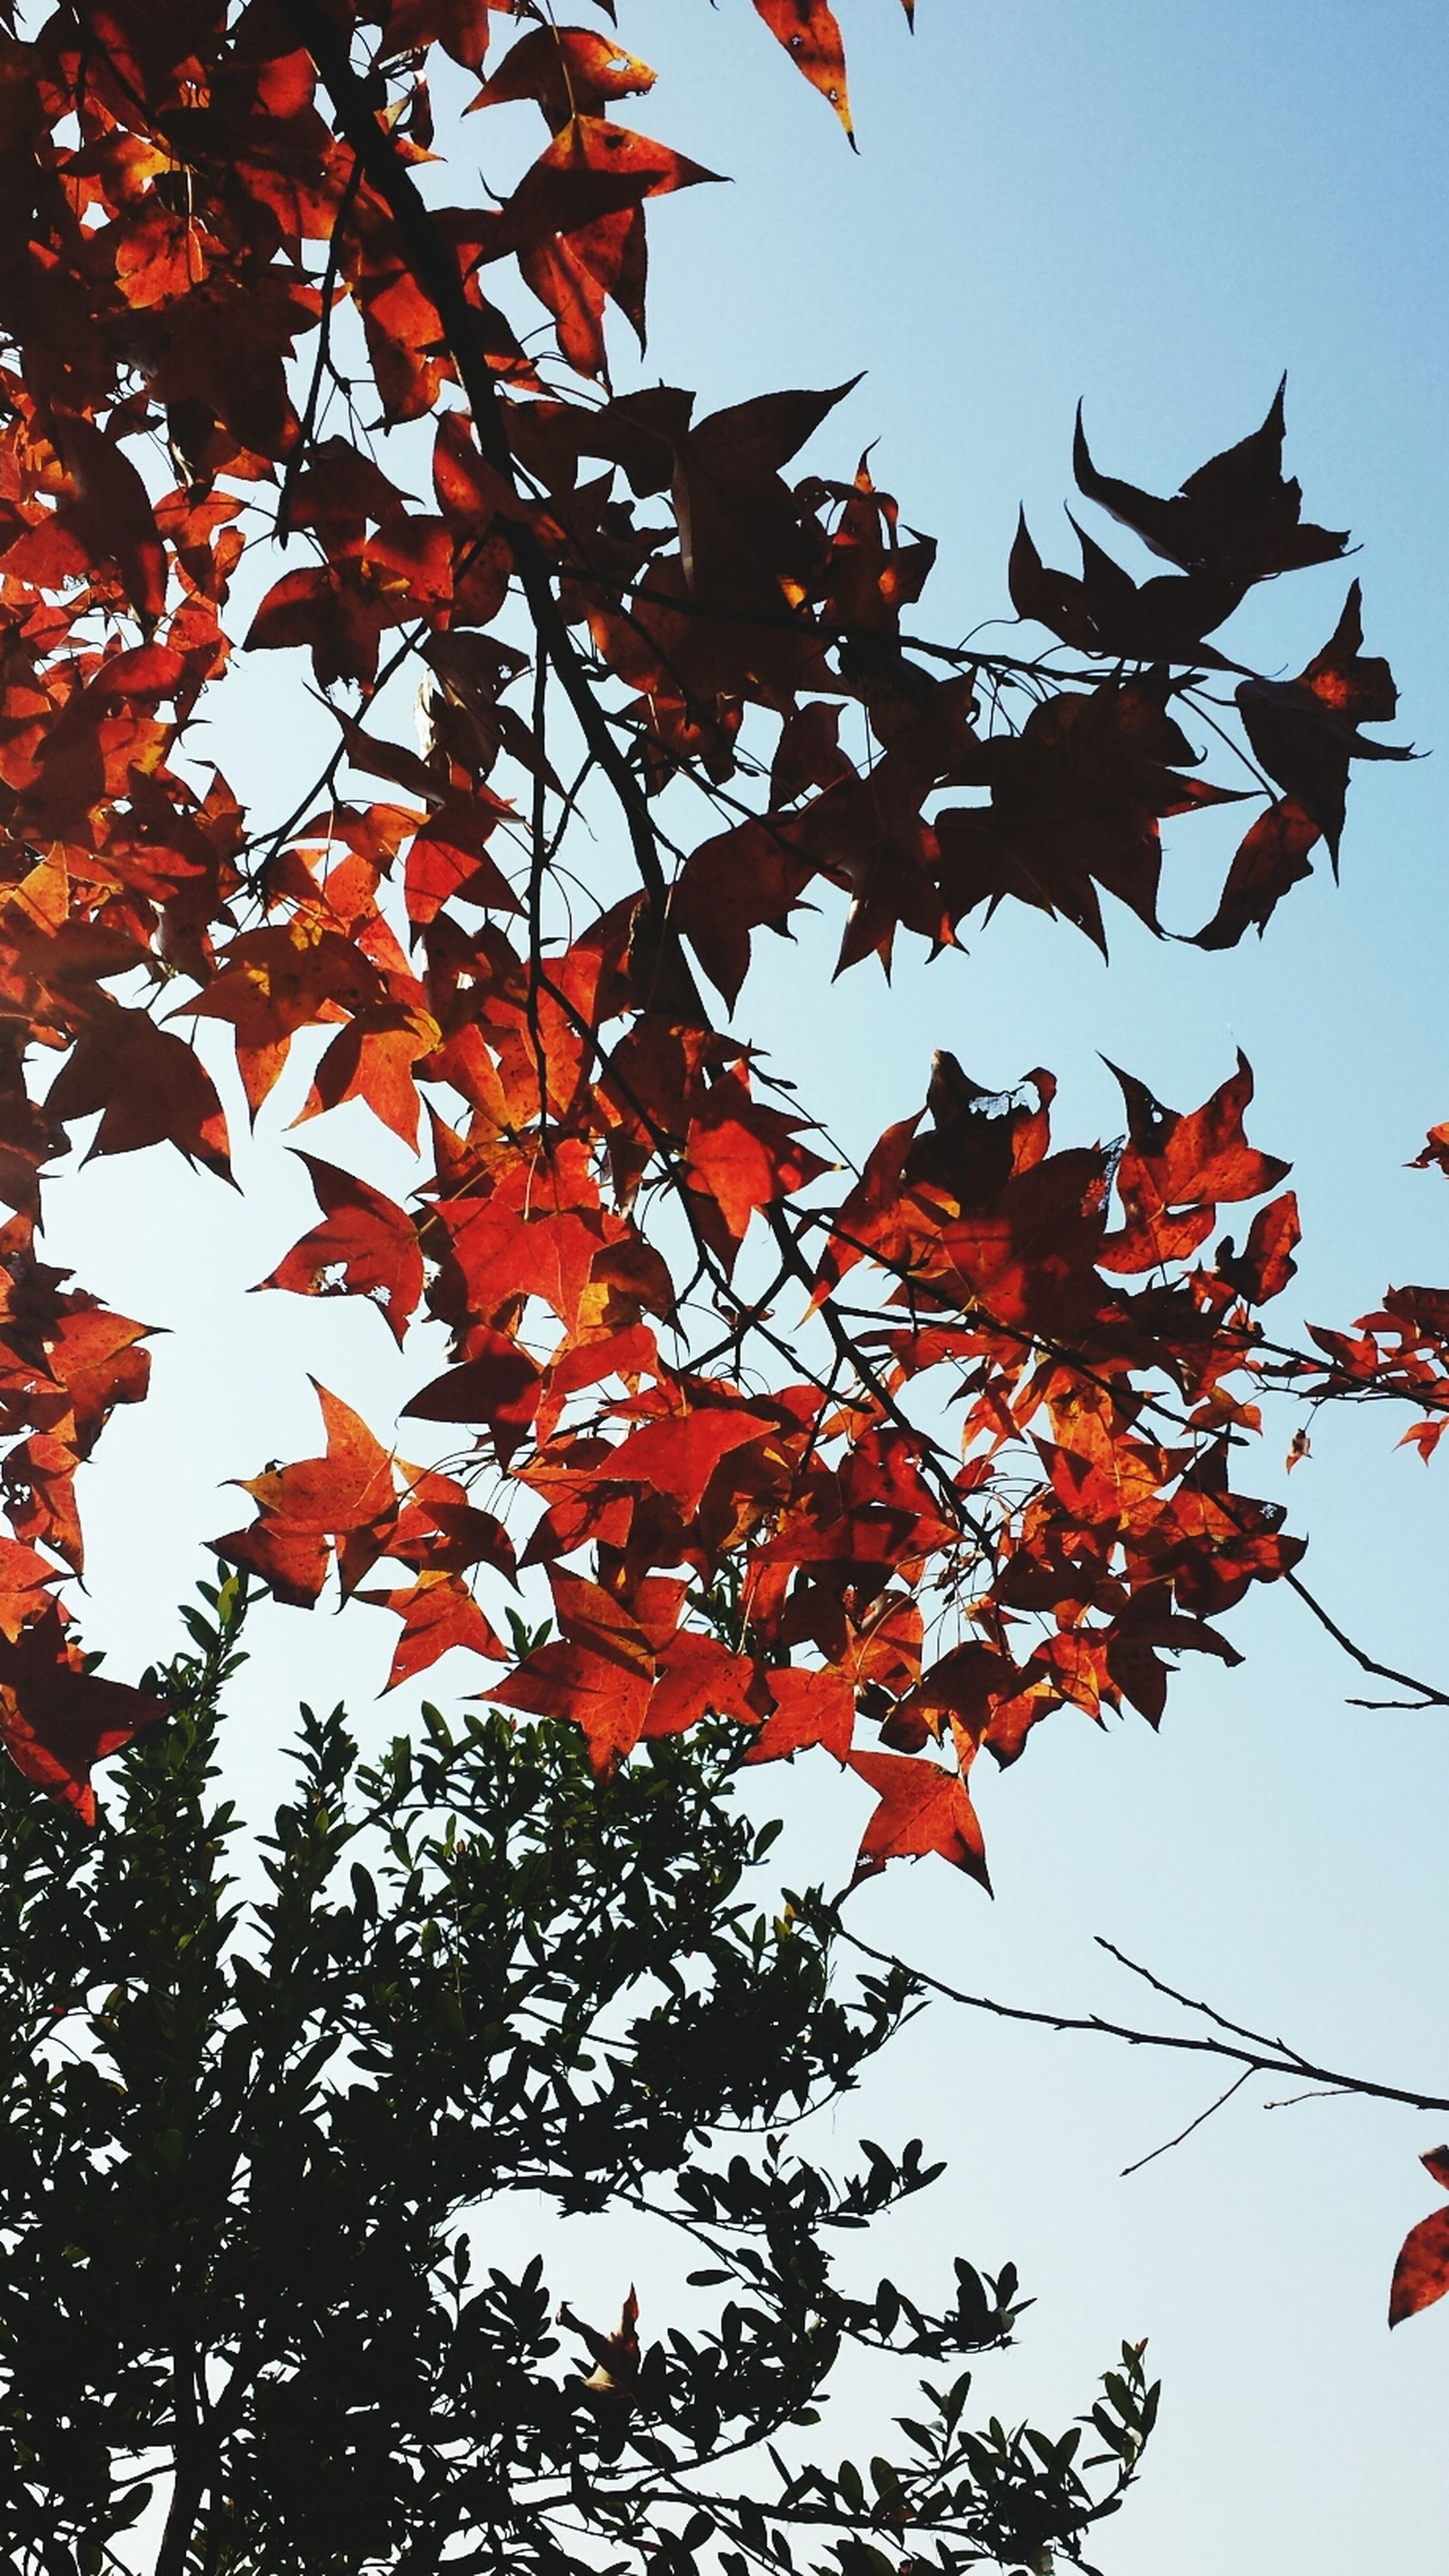 autumn, low angle view, branch, change, tree, leaf, season, clear sky, growth, nature, beauty in nature, sky, red, orange color, maple leaf, leaves, tranquility, maple tree, day, outdoors